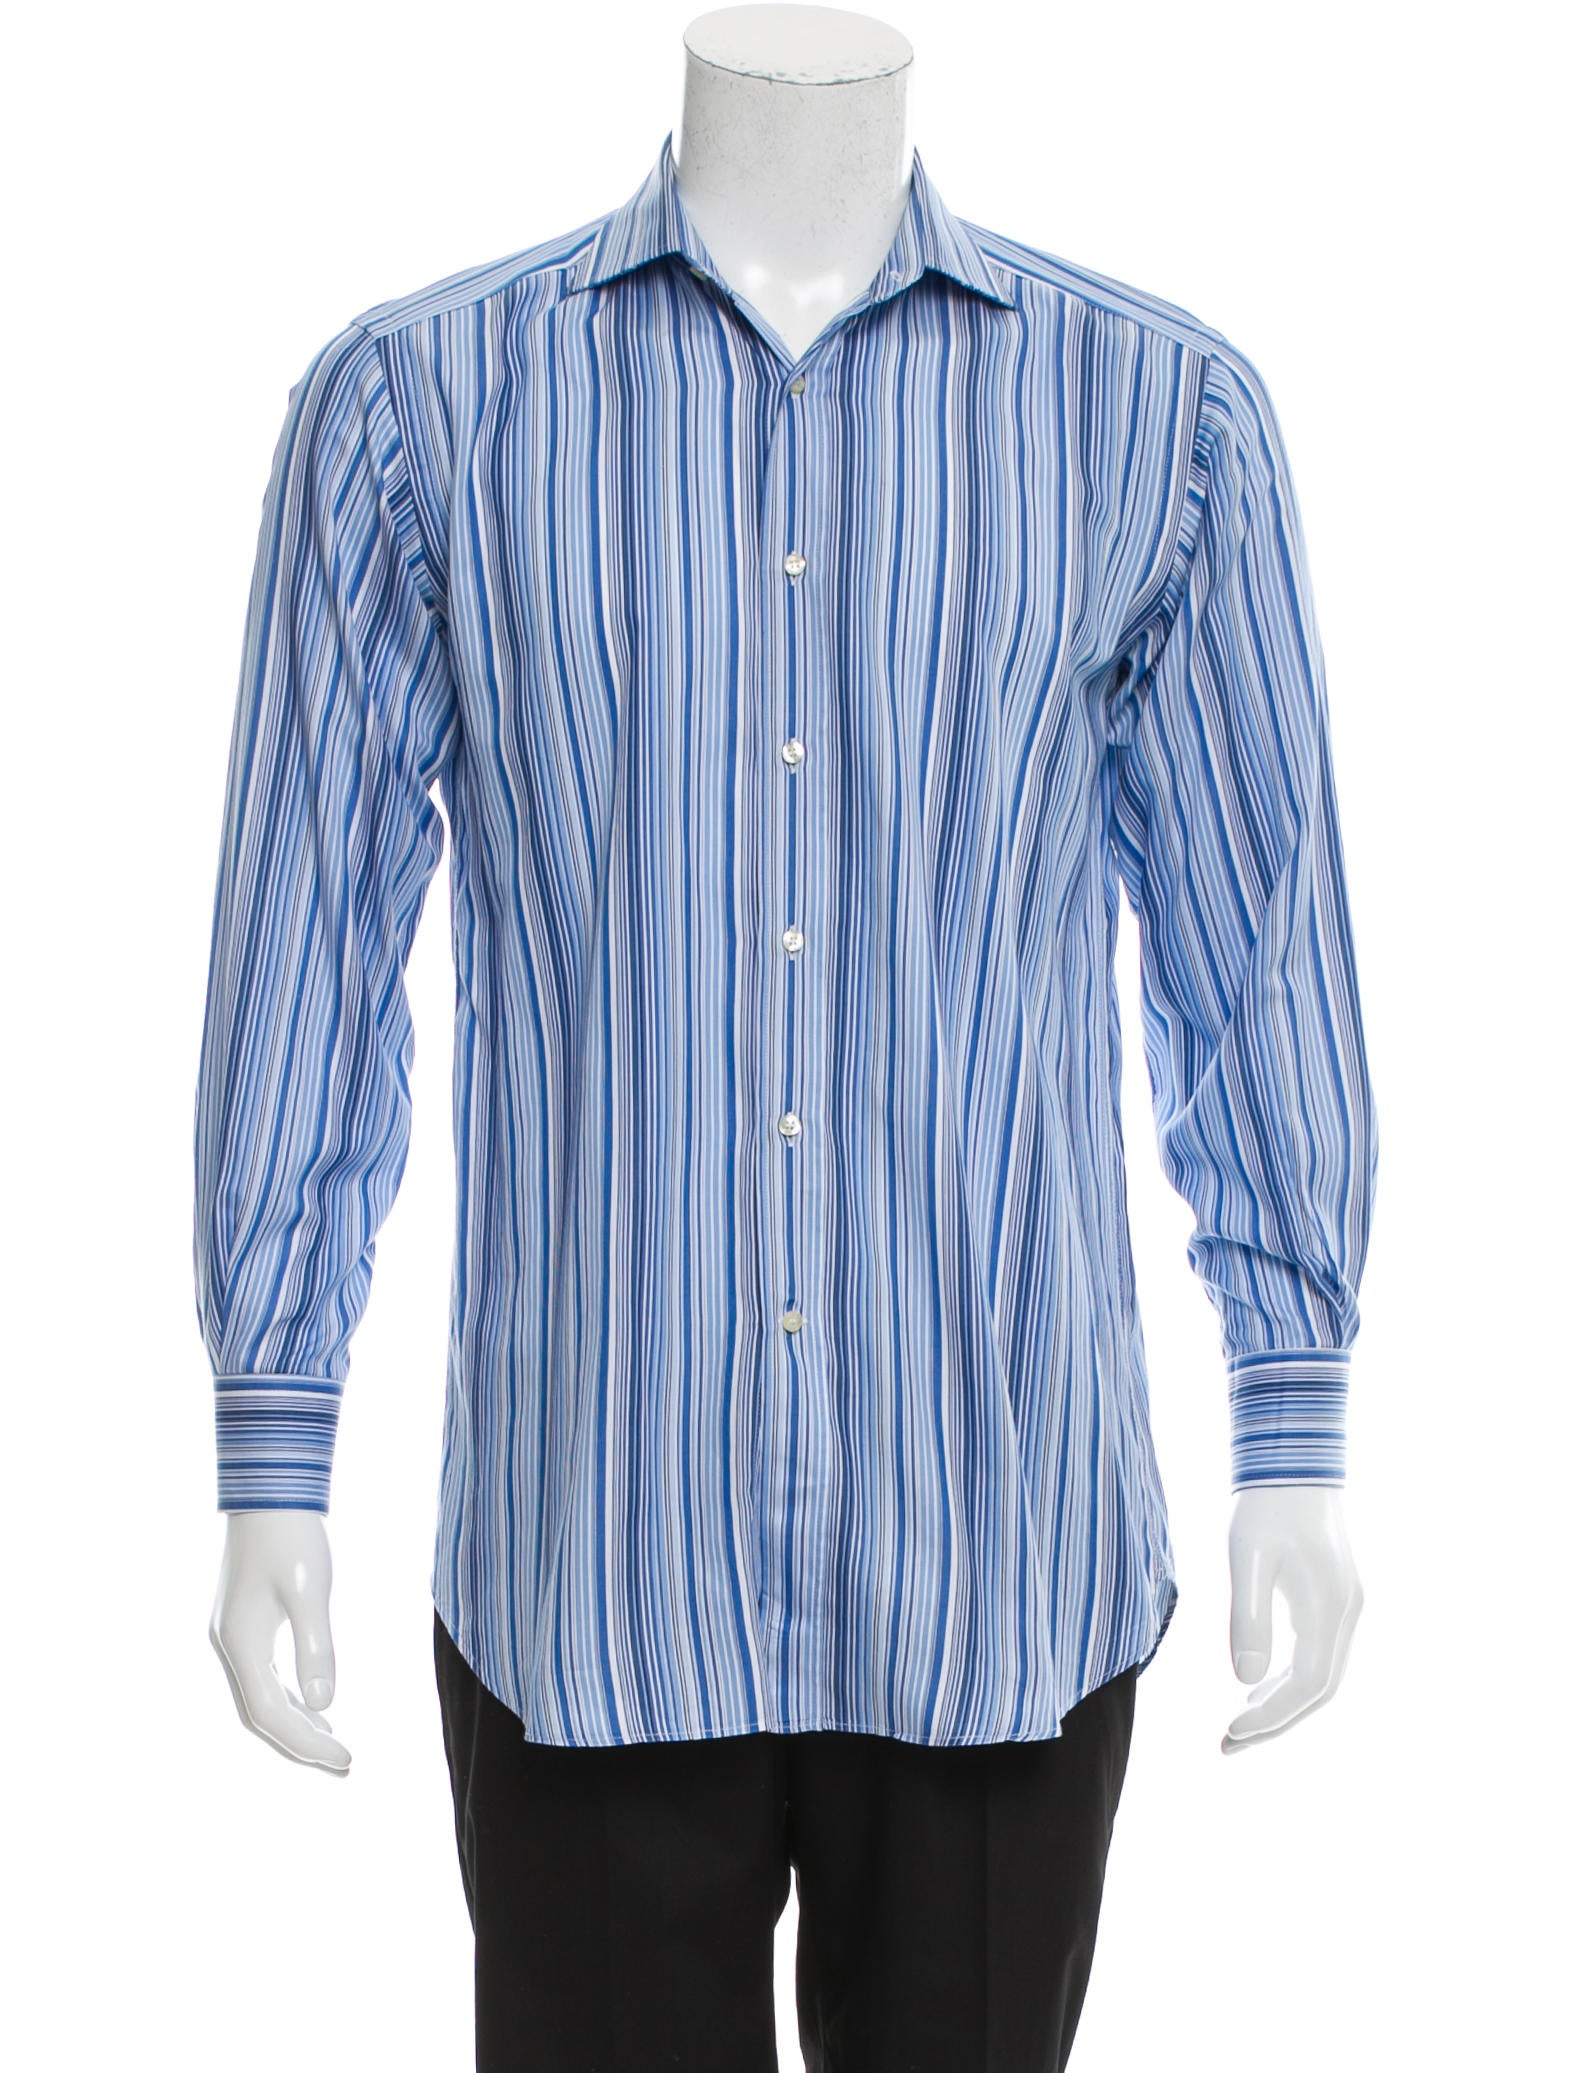 Etro Striped Button Up Shirt Clothing Etr45768 The